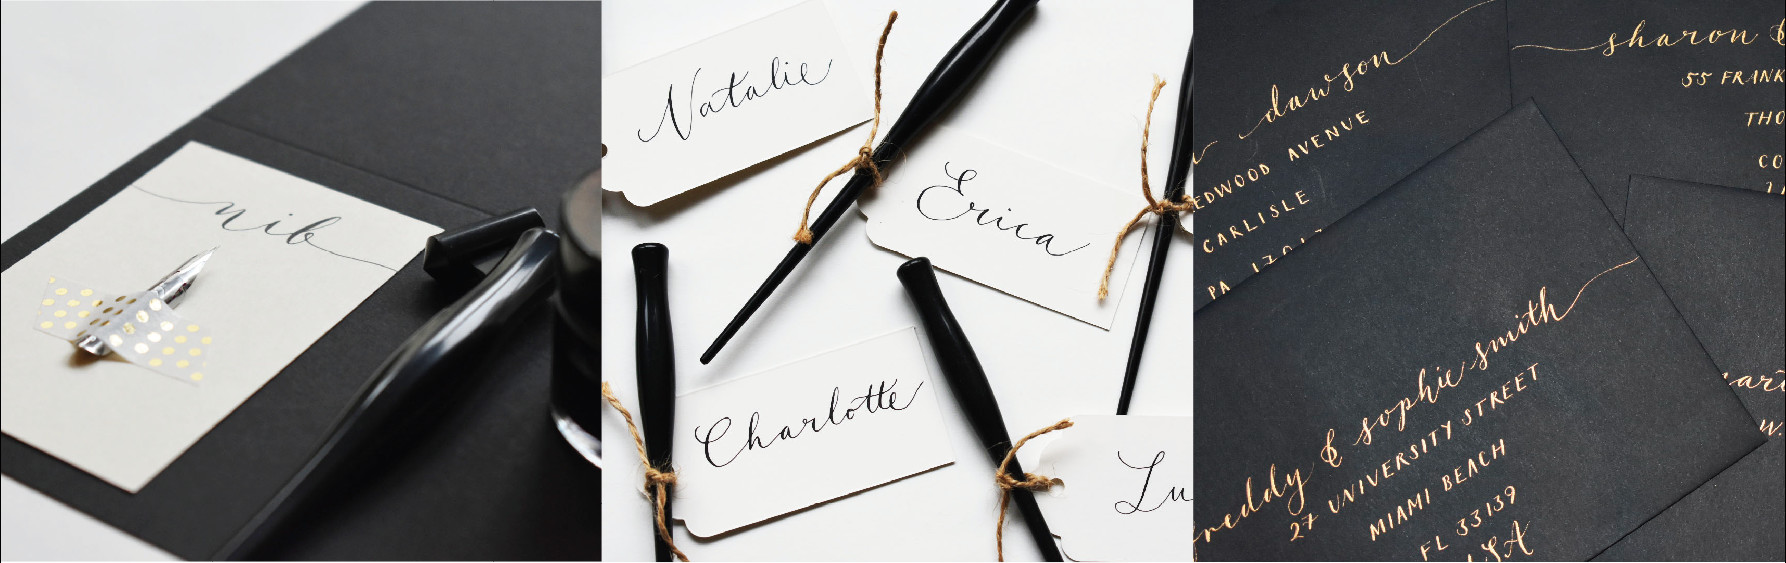 Beginner Modern Calligraphy Workshop by Babooche Calligraphy - art in London